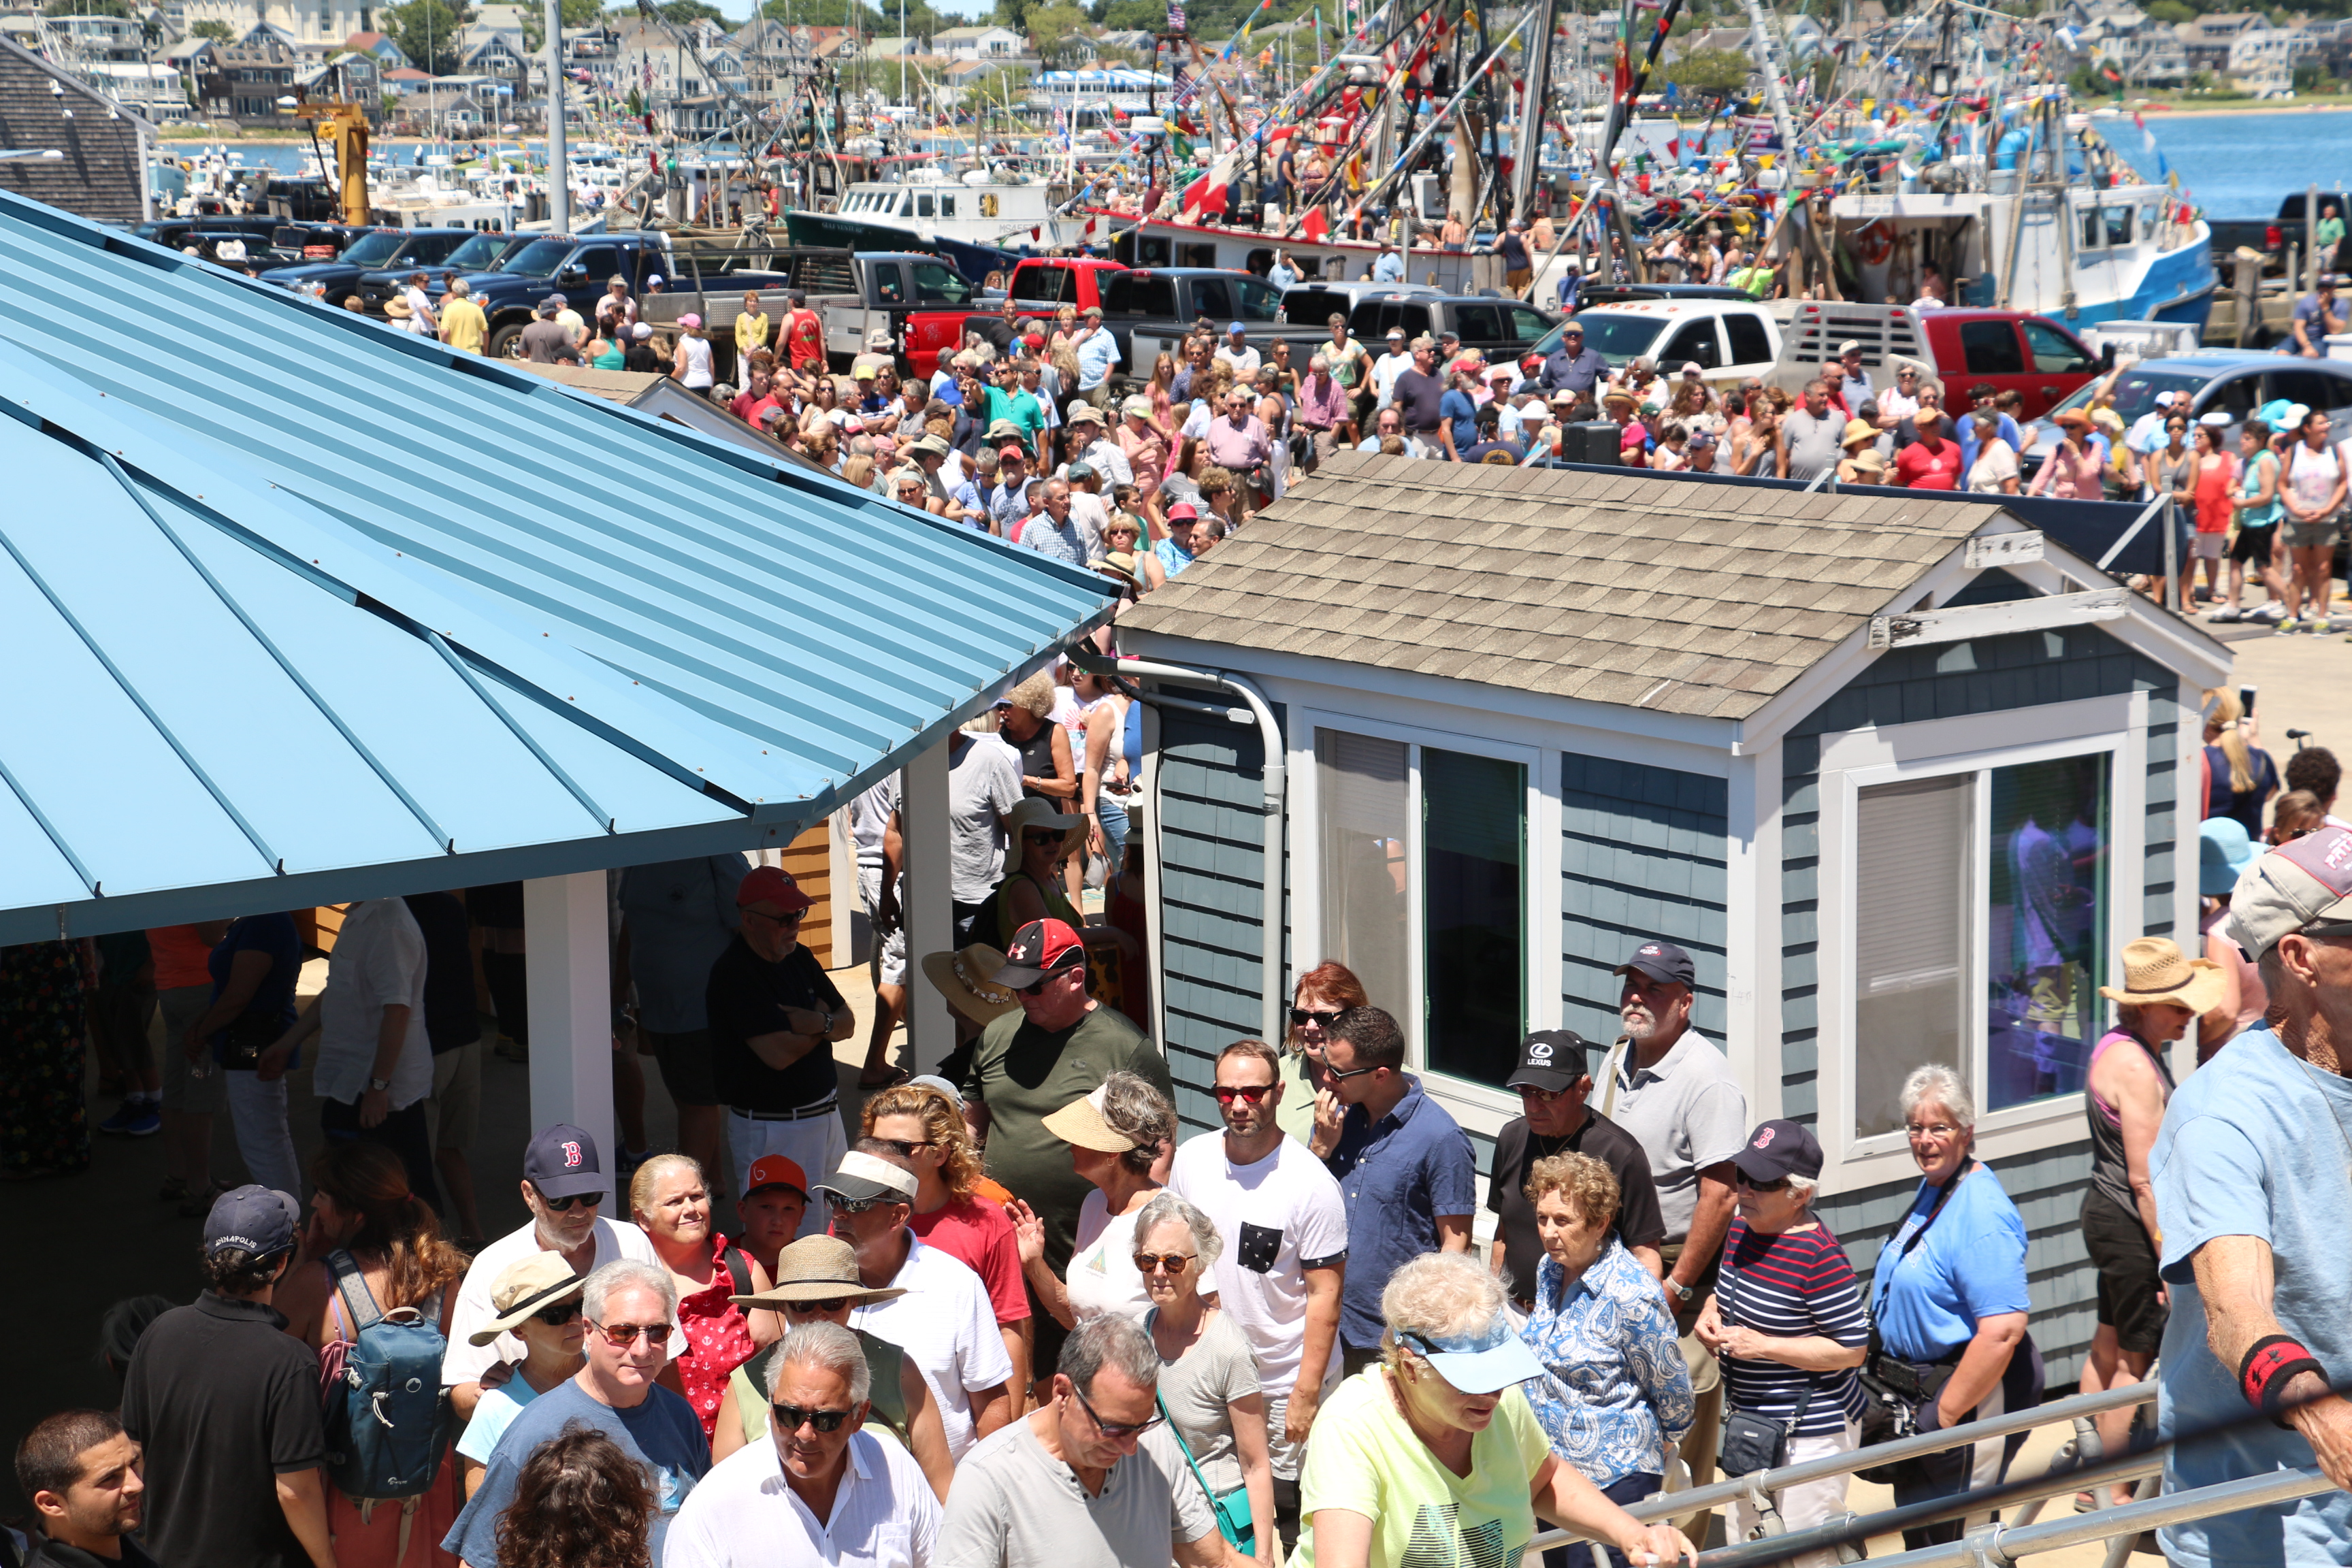 Crowds line up to board the ferry on which the bishop will stand to bless the fishing fleet.